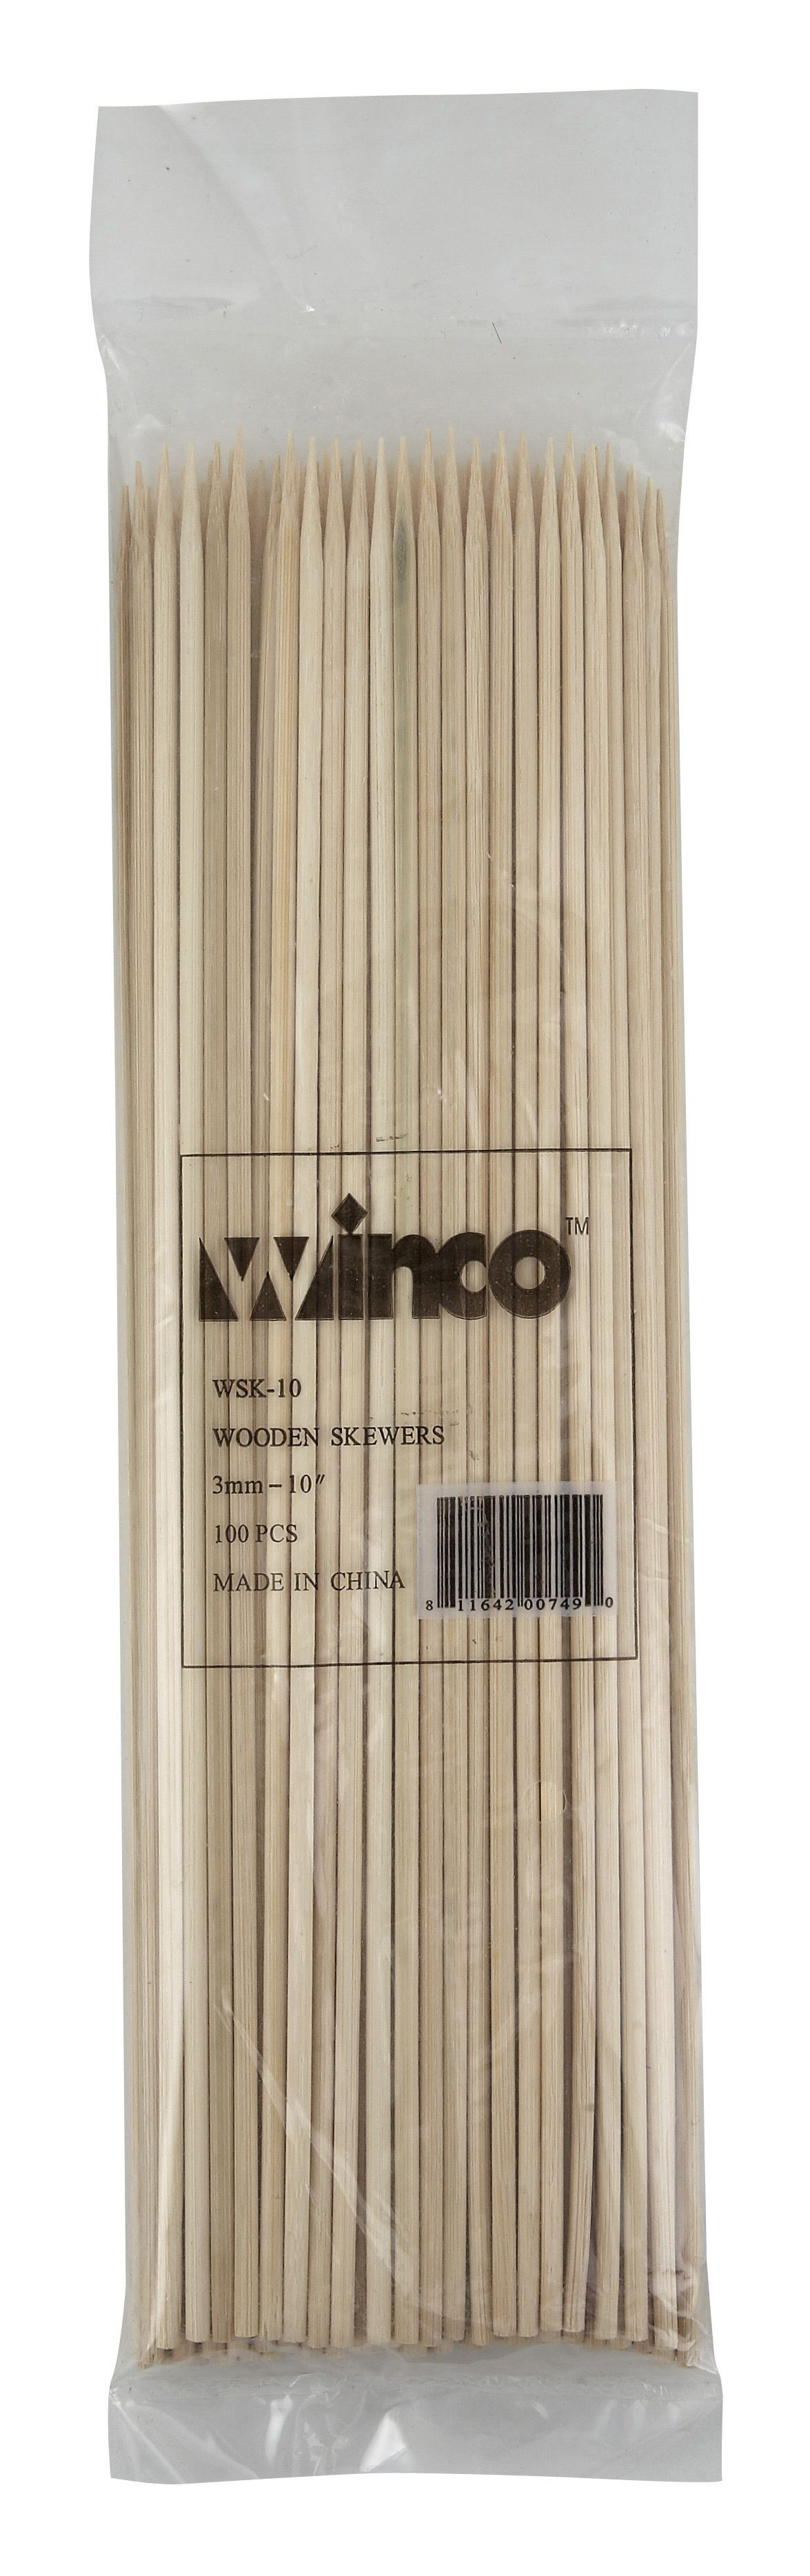 Bamboo Skewers Pack (100Pcs/Bag) - 10